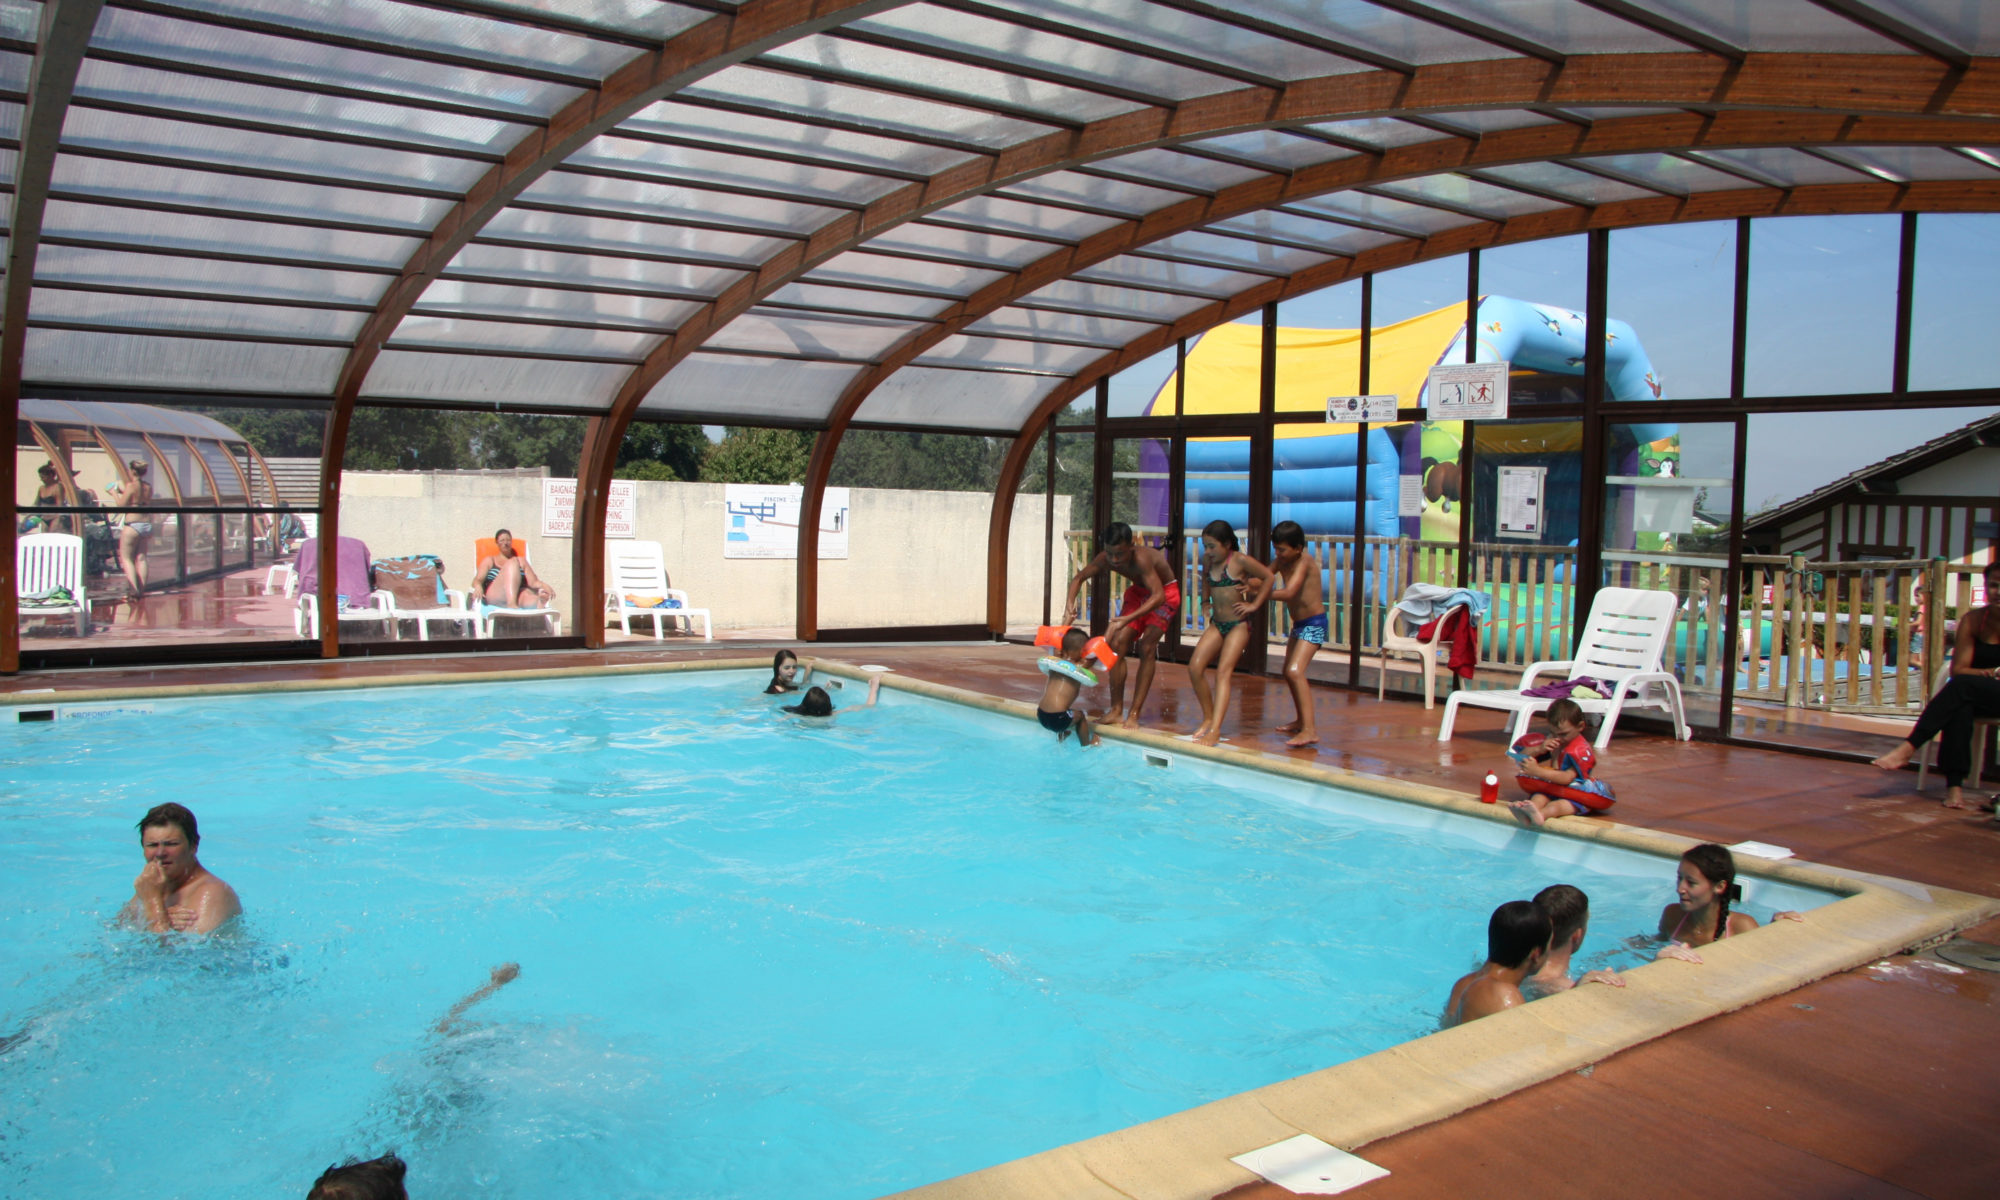 Attractive Our Indoor Heated Swimming Pool Offers: